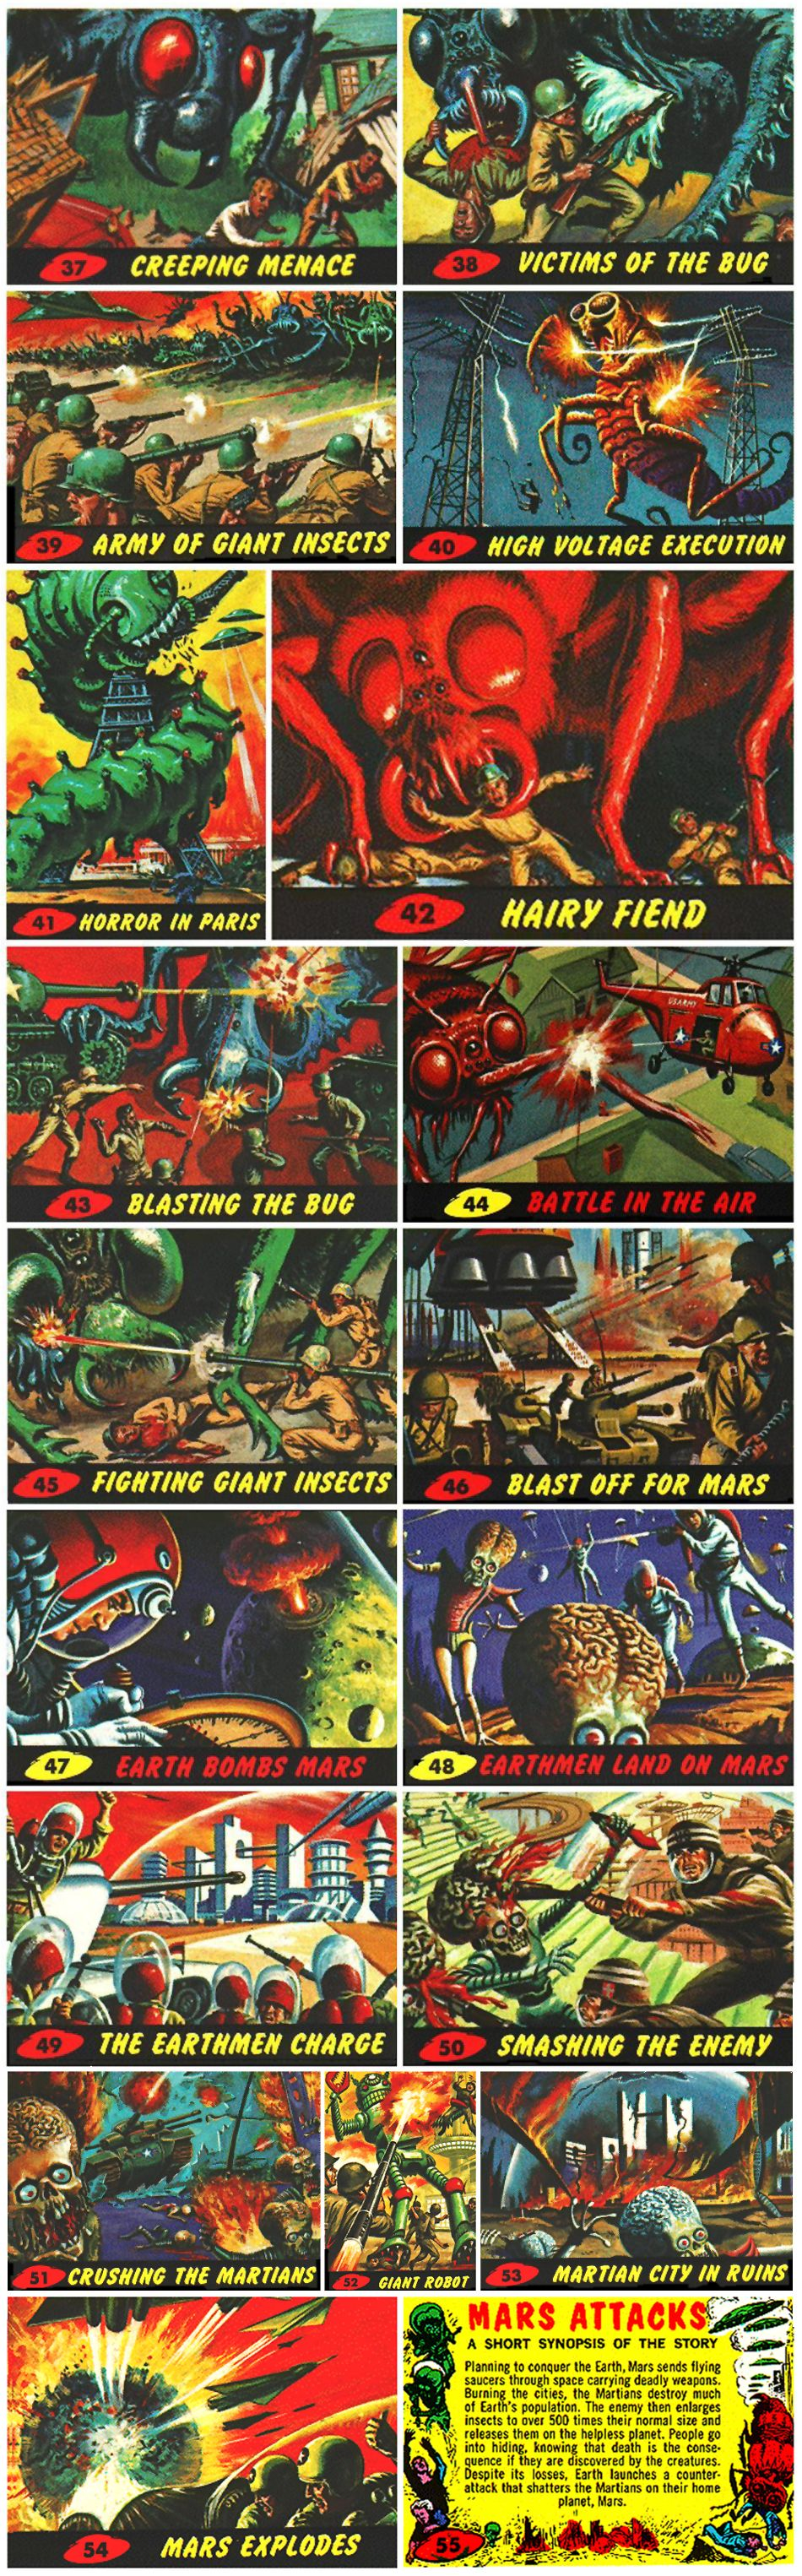 Archives - Old space magazines Topps4